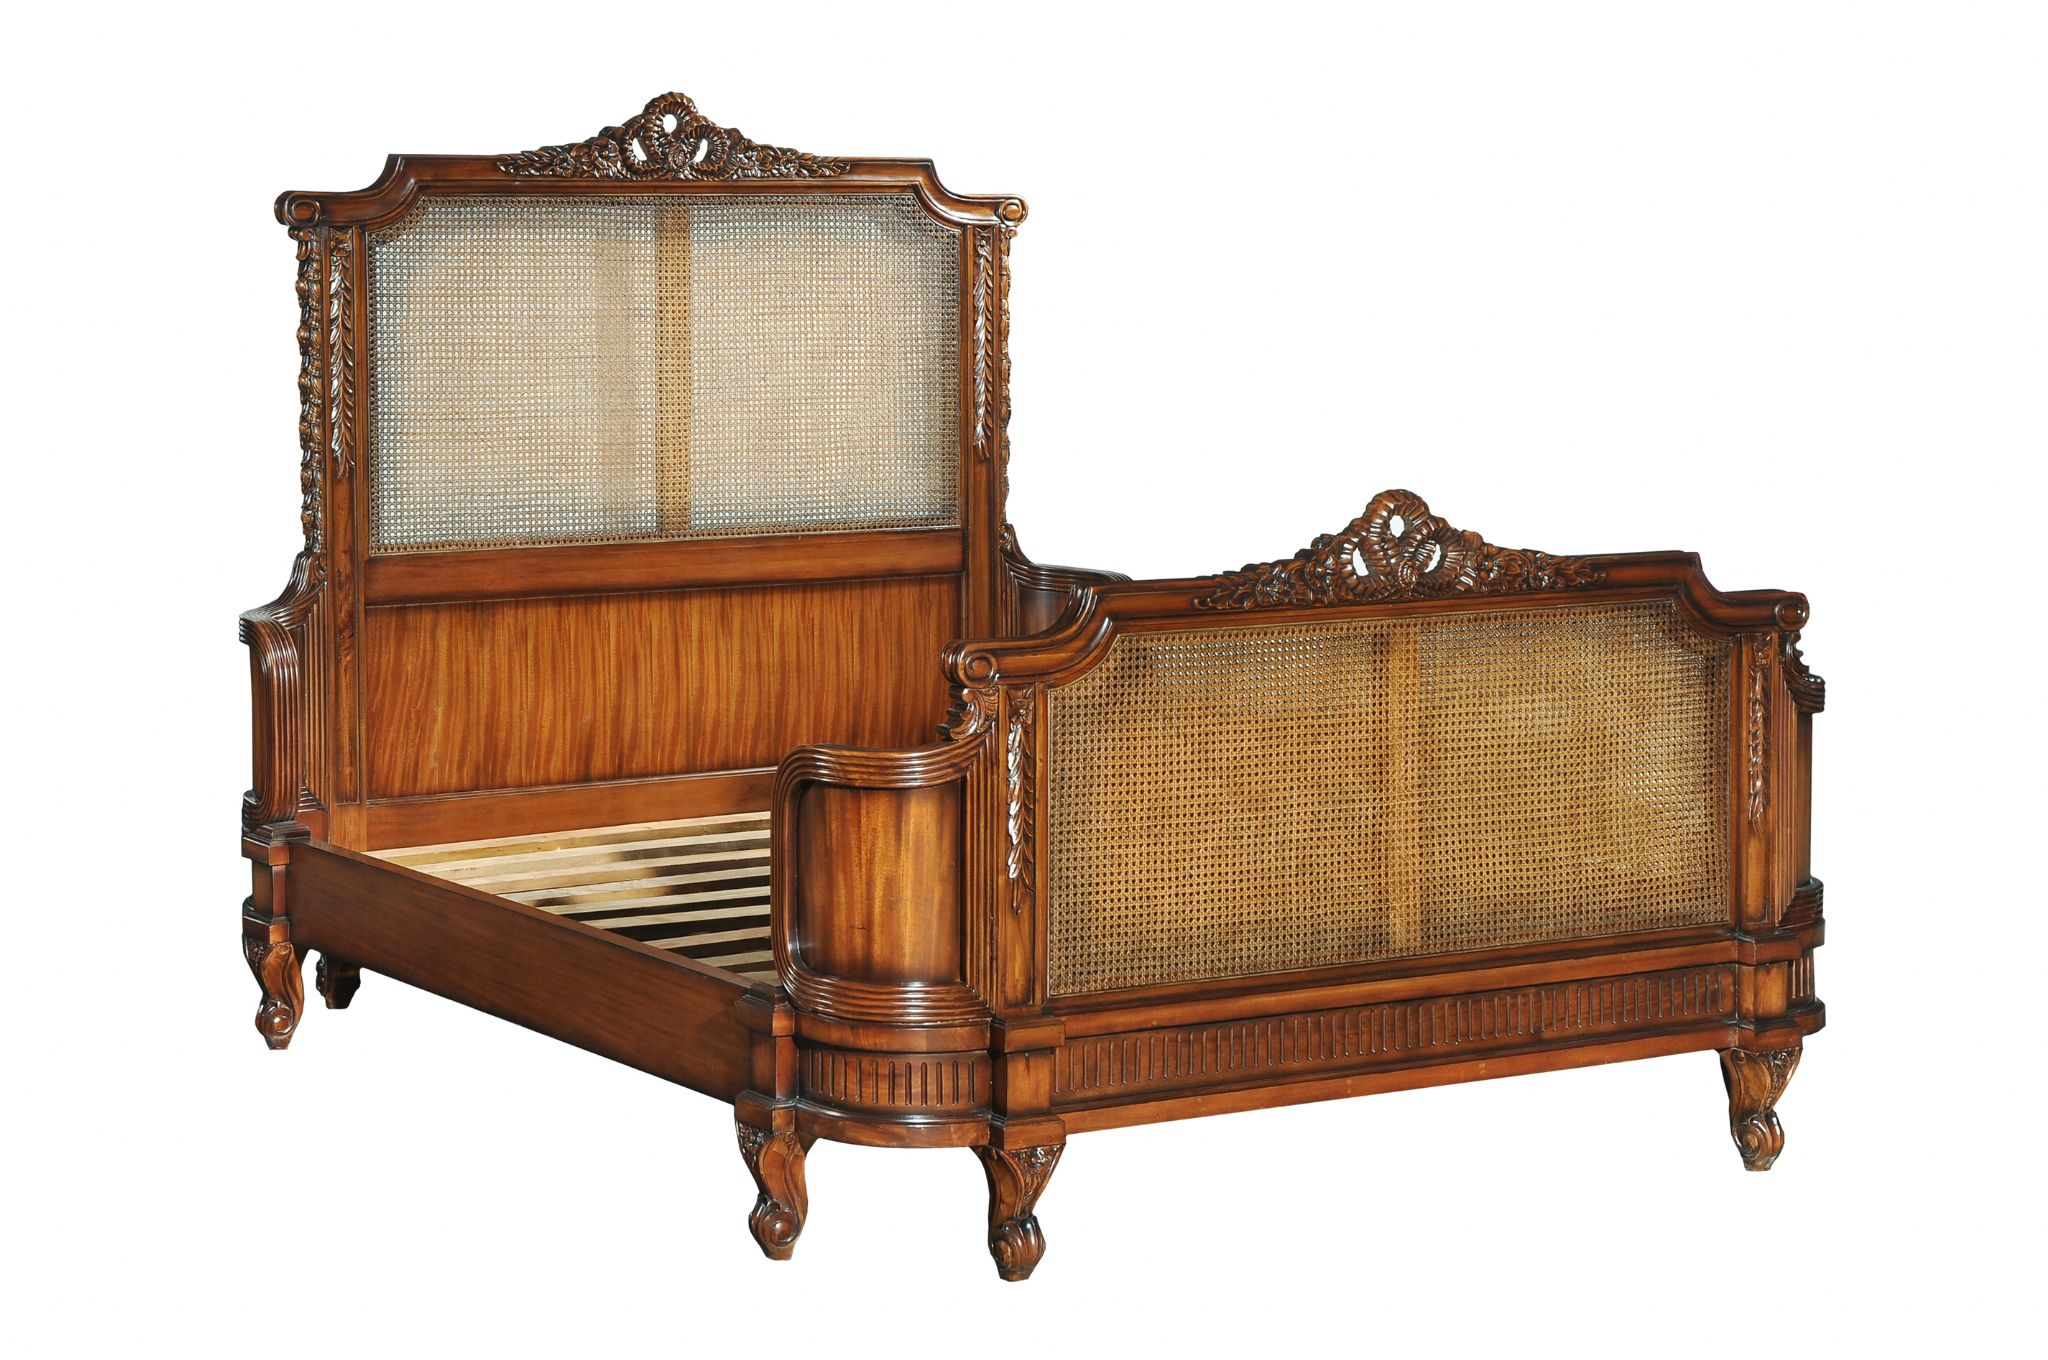 French Rattan Bed In Mahogany